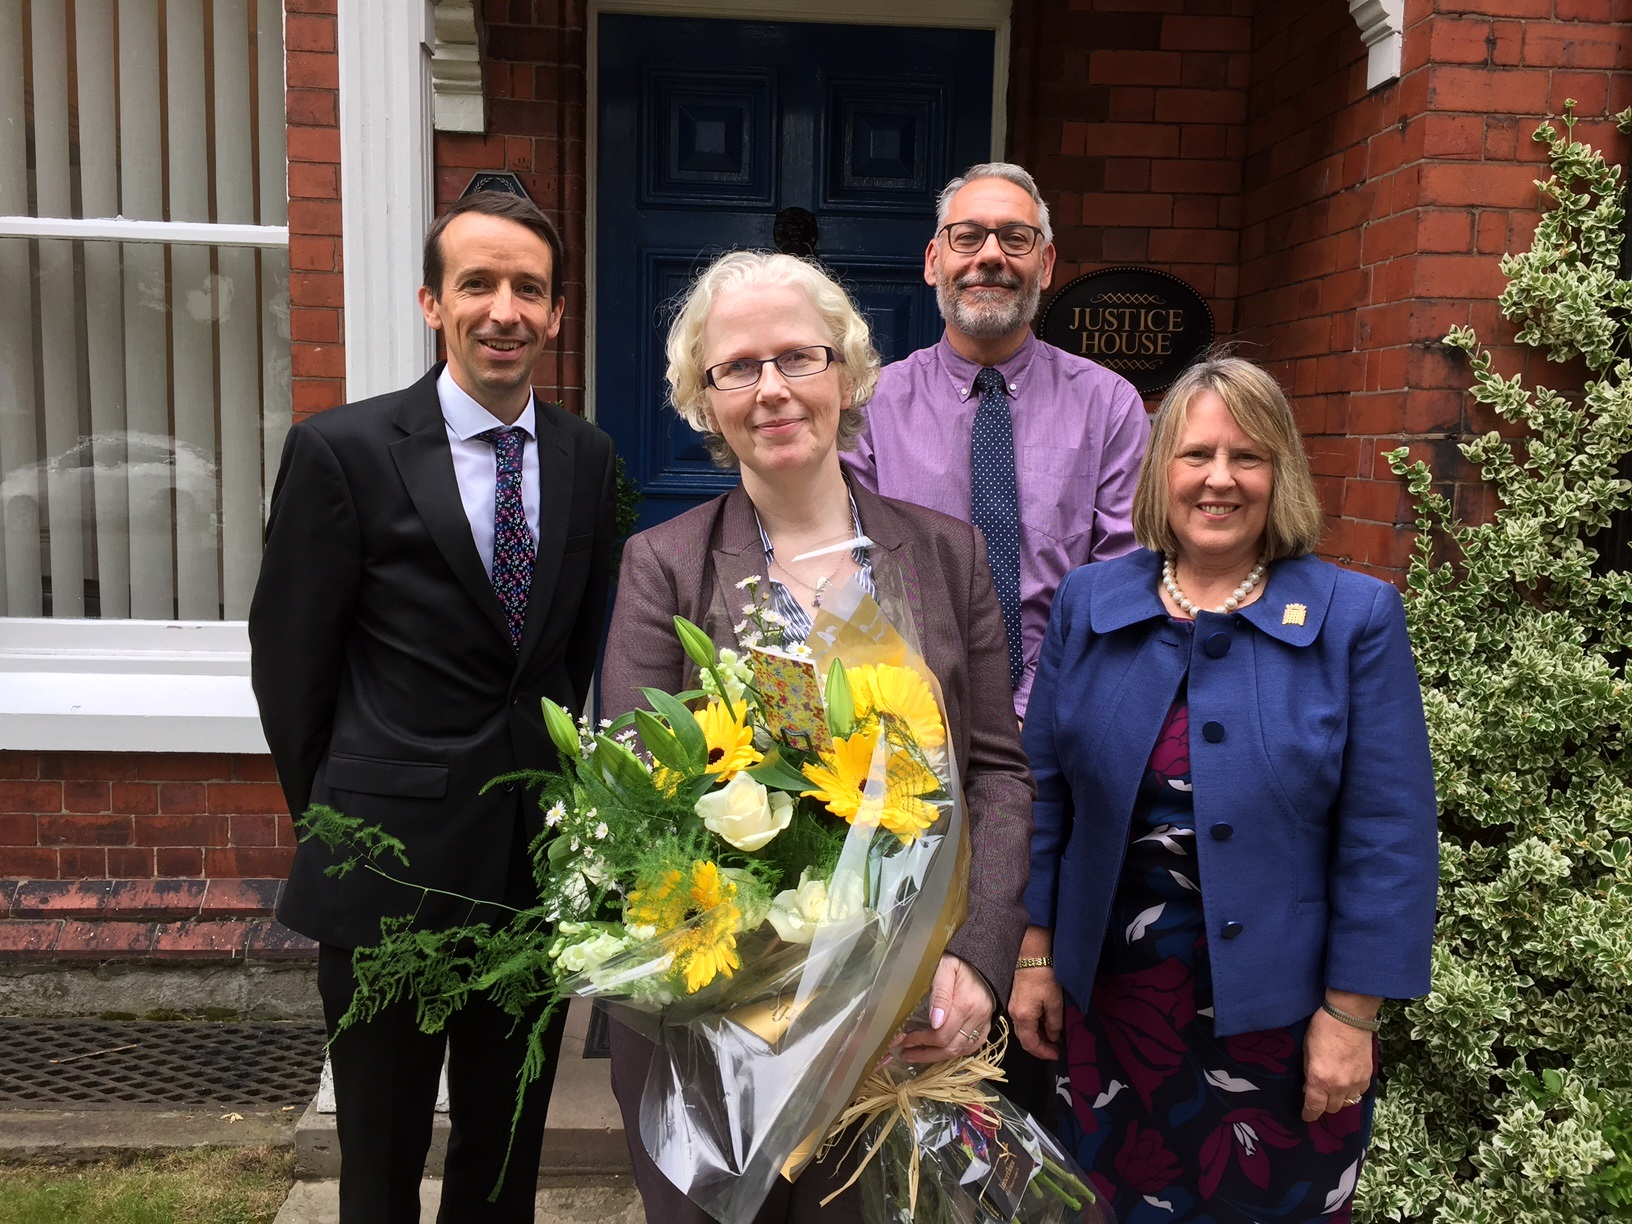 Solicitors at Fiona Bruce's offices in Warrington